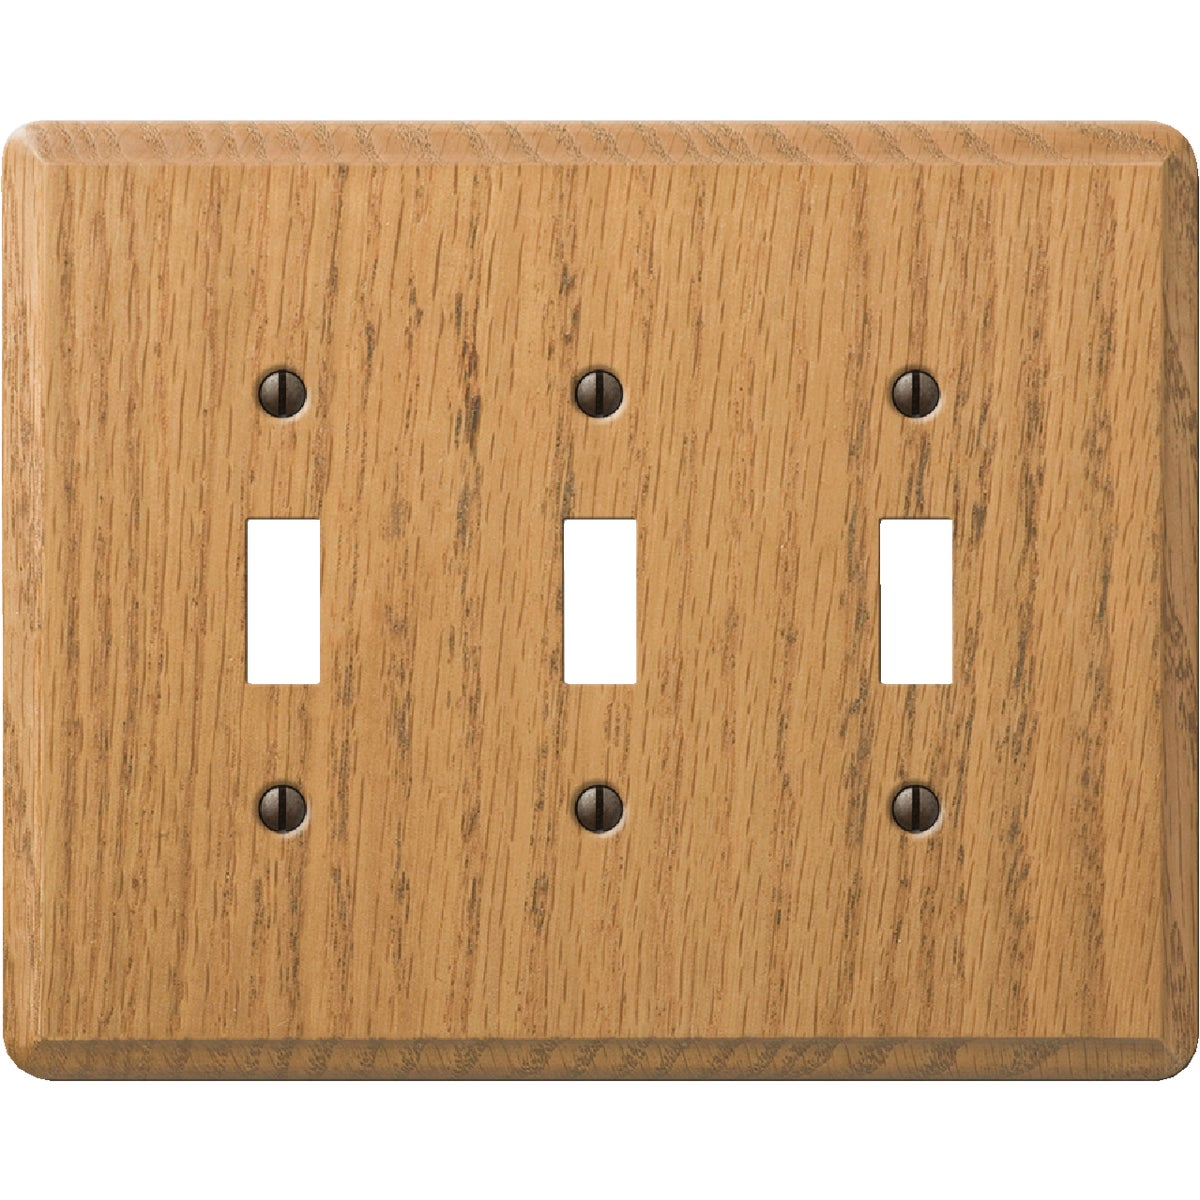 OAK 3-TOGGLE WALL PLATE